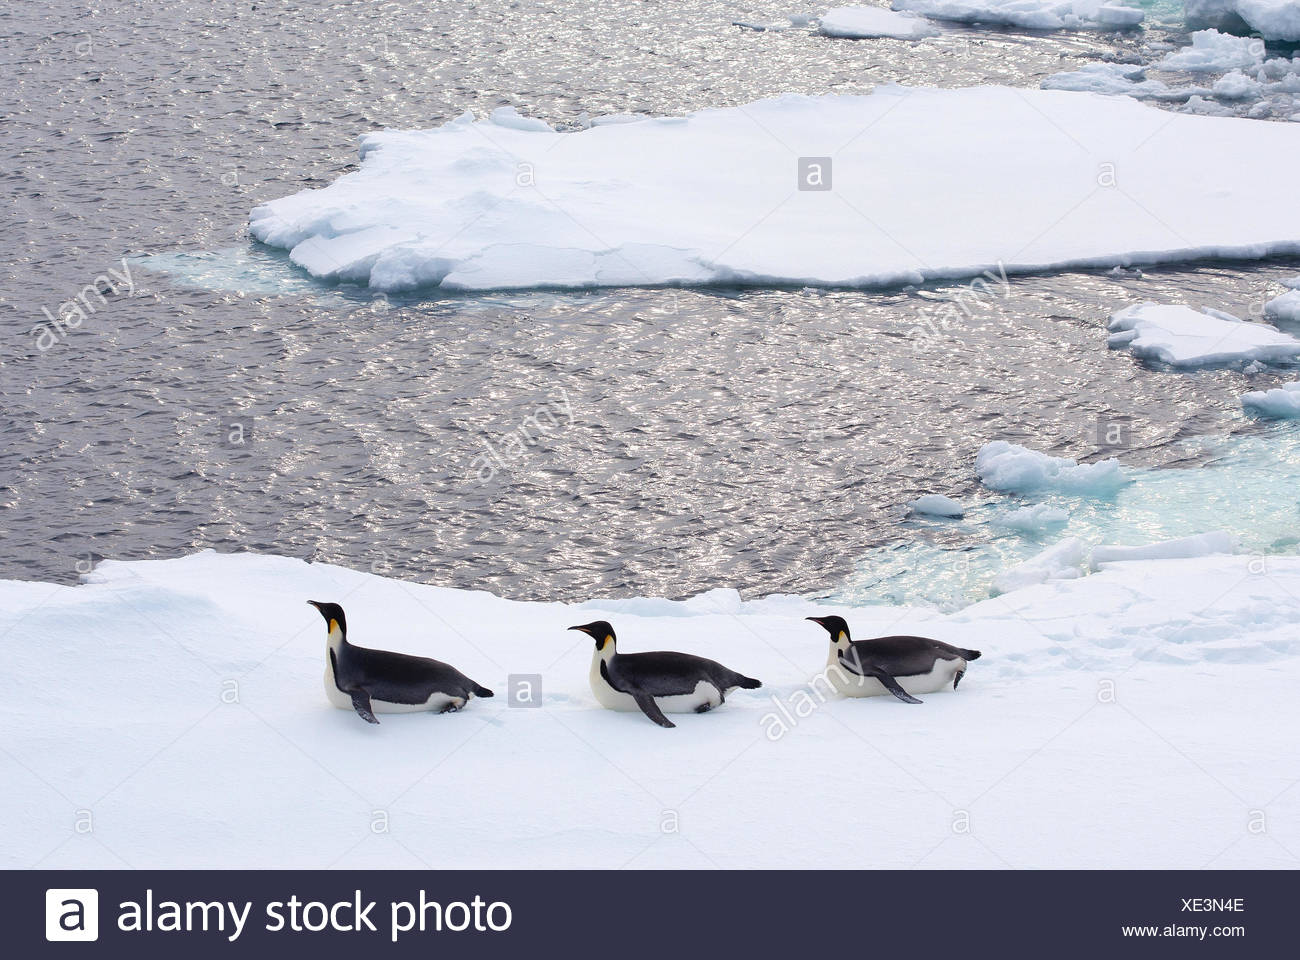 Emperor Penguins on iceberg, ice floe in the southern ocean, 180 miles north of East Antarctica, Antarctica - Stock Image